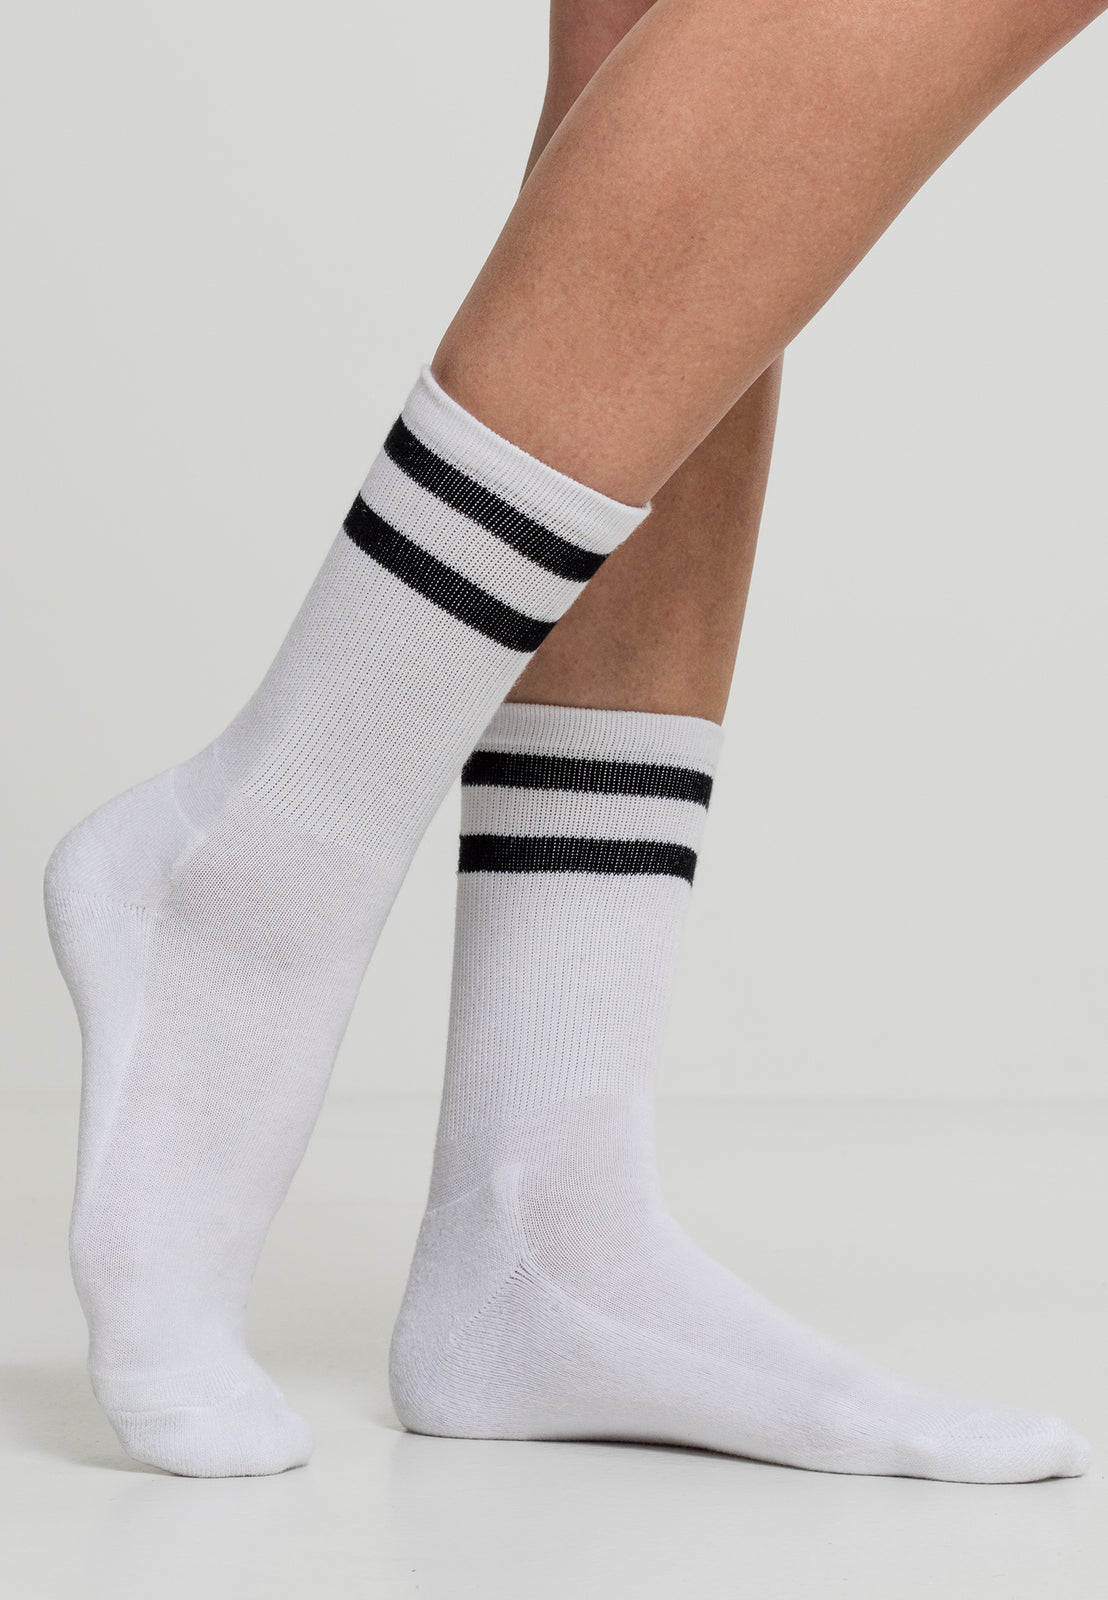 2-Stripe Socks 2-Pack white/black